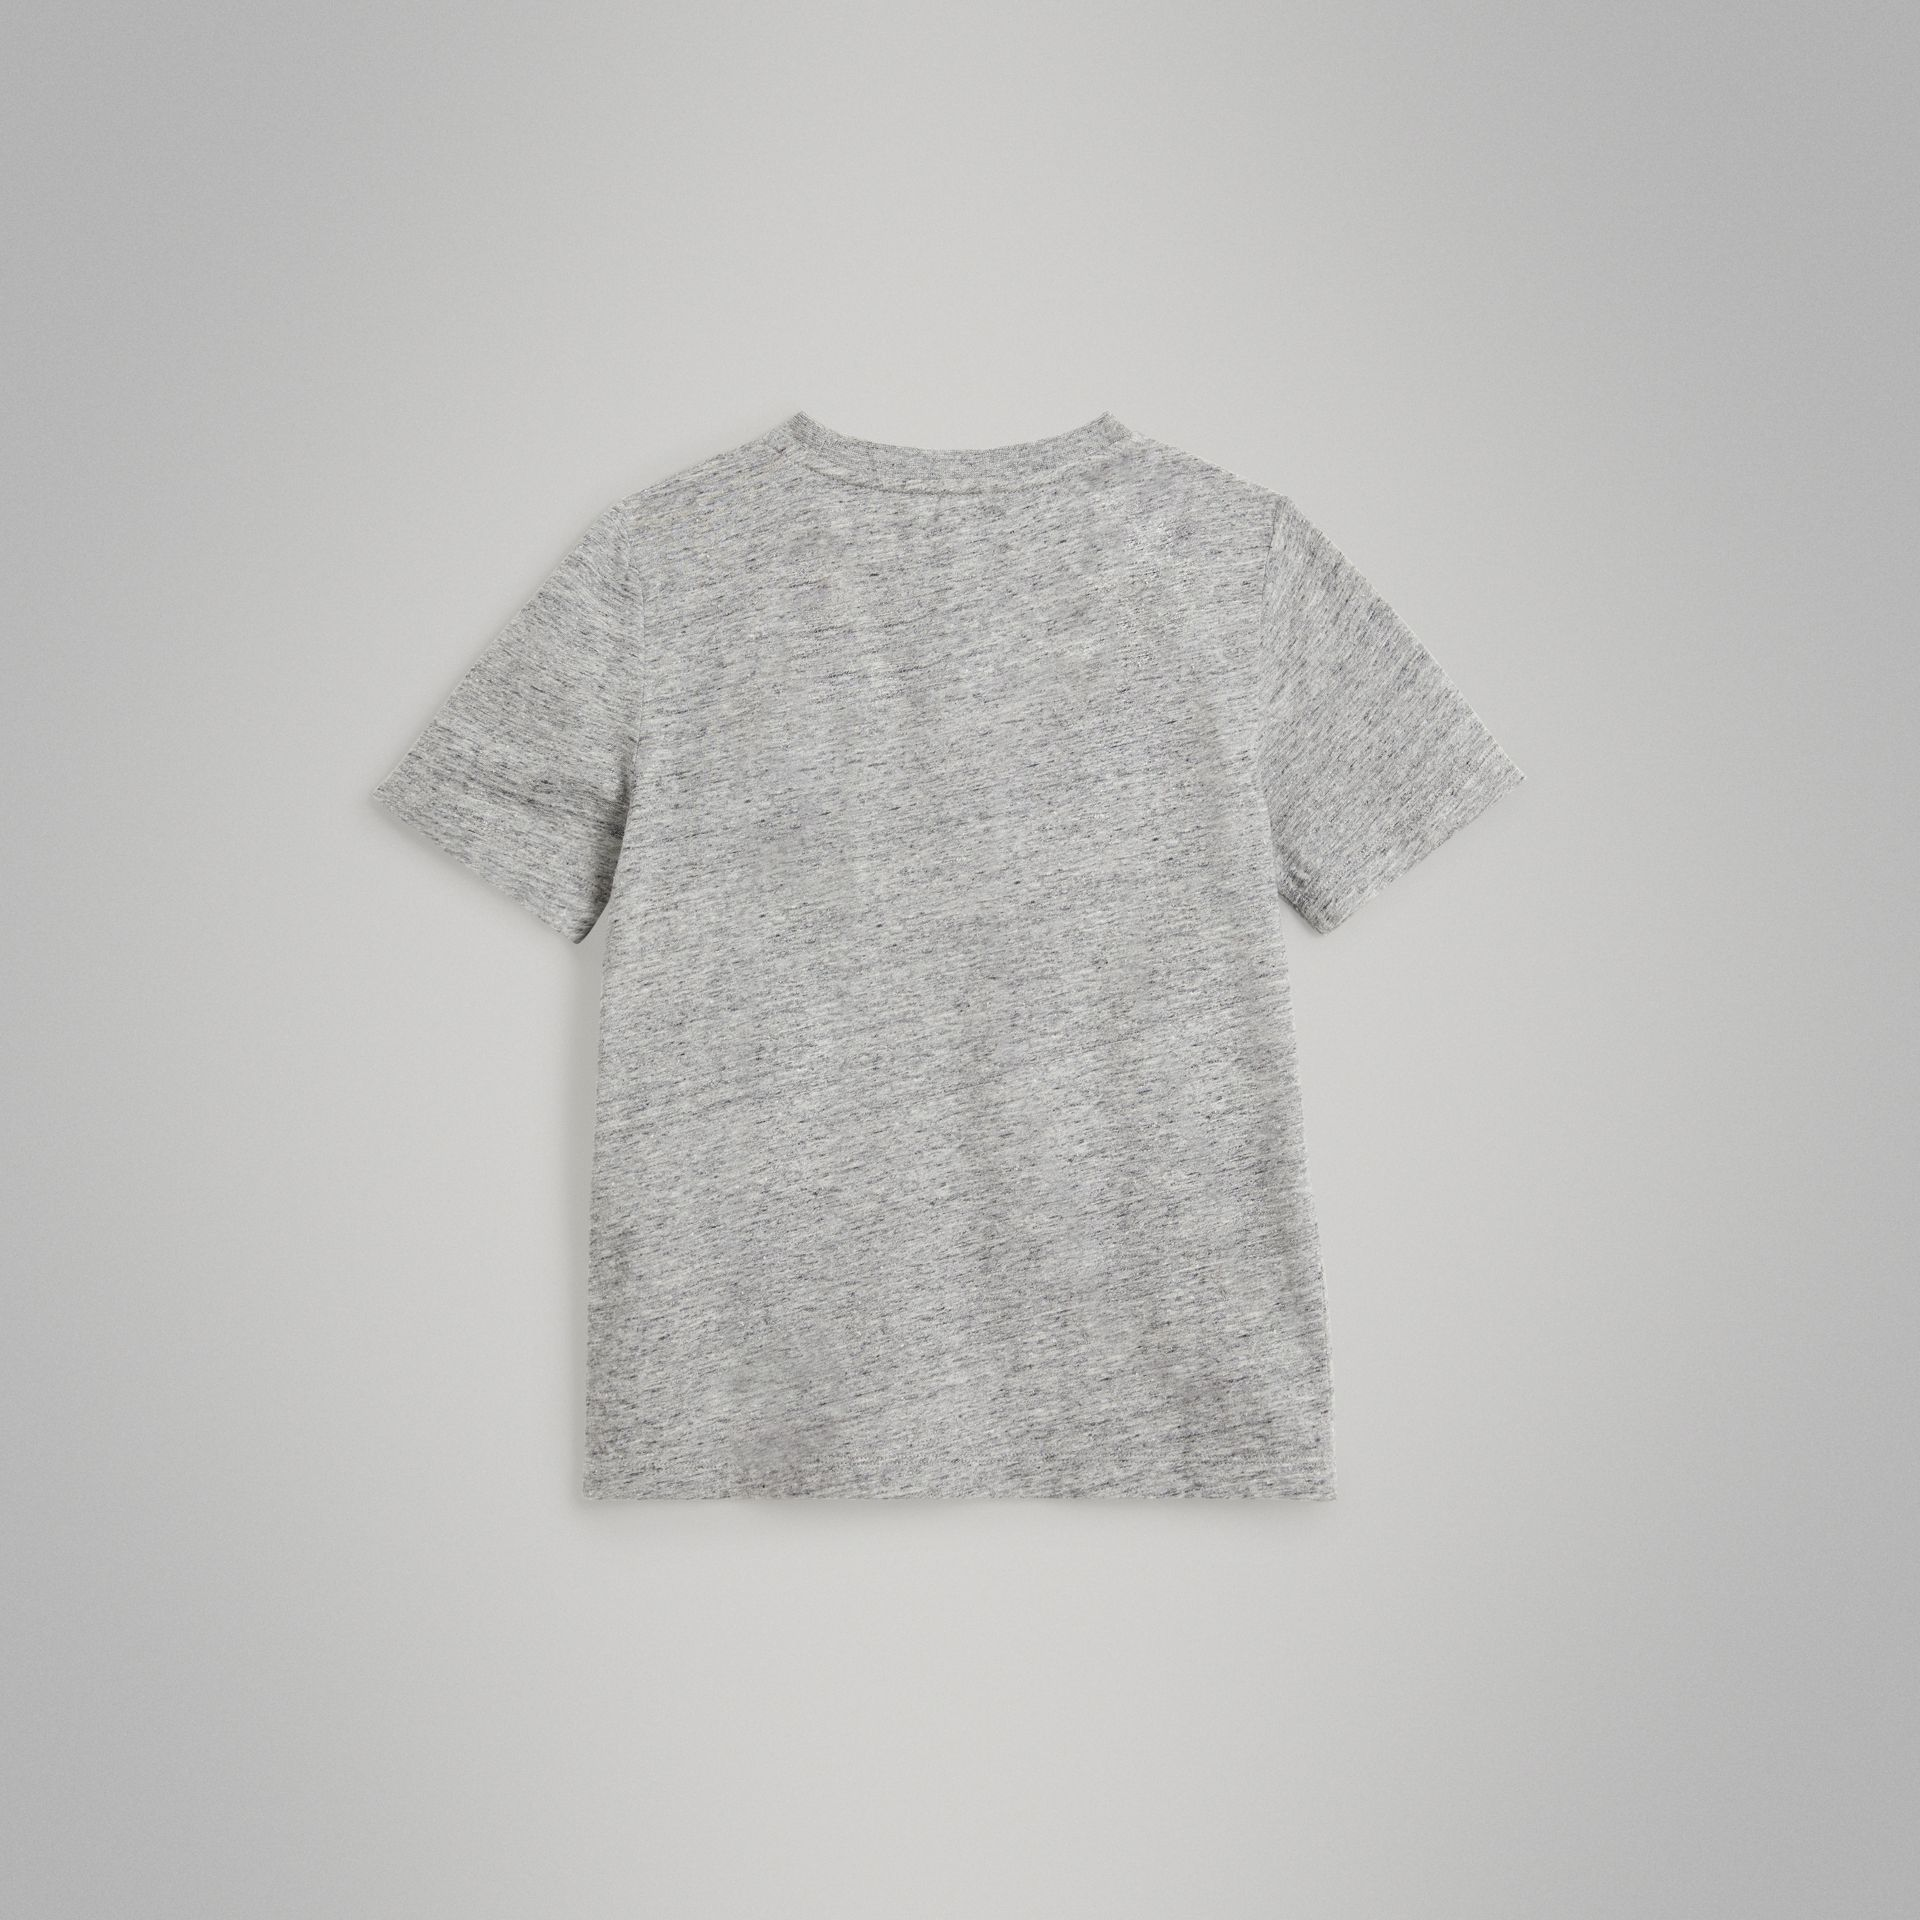 Logo Print Cotton Blend T-shirt in Grey Melange | Burberry - gallery image 3